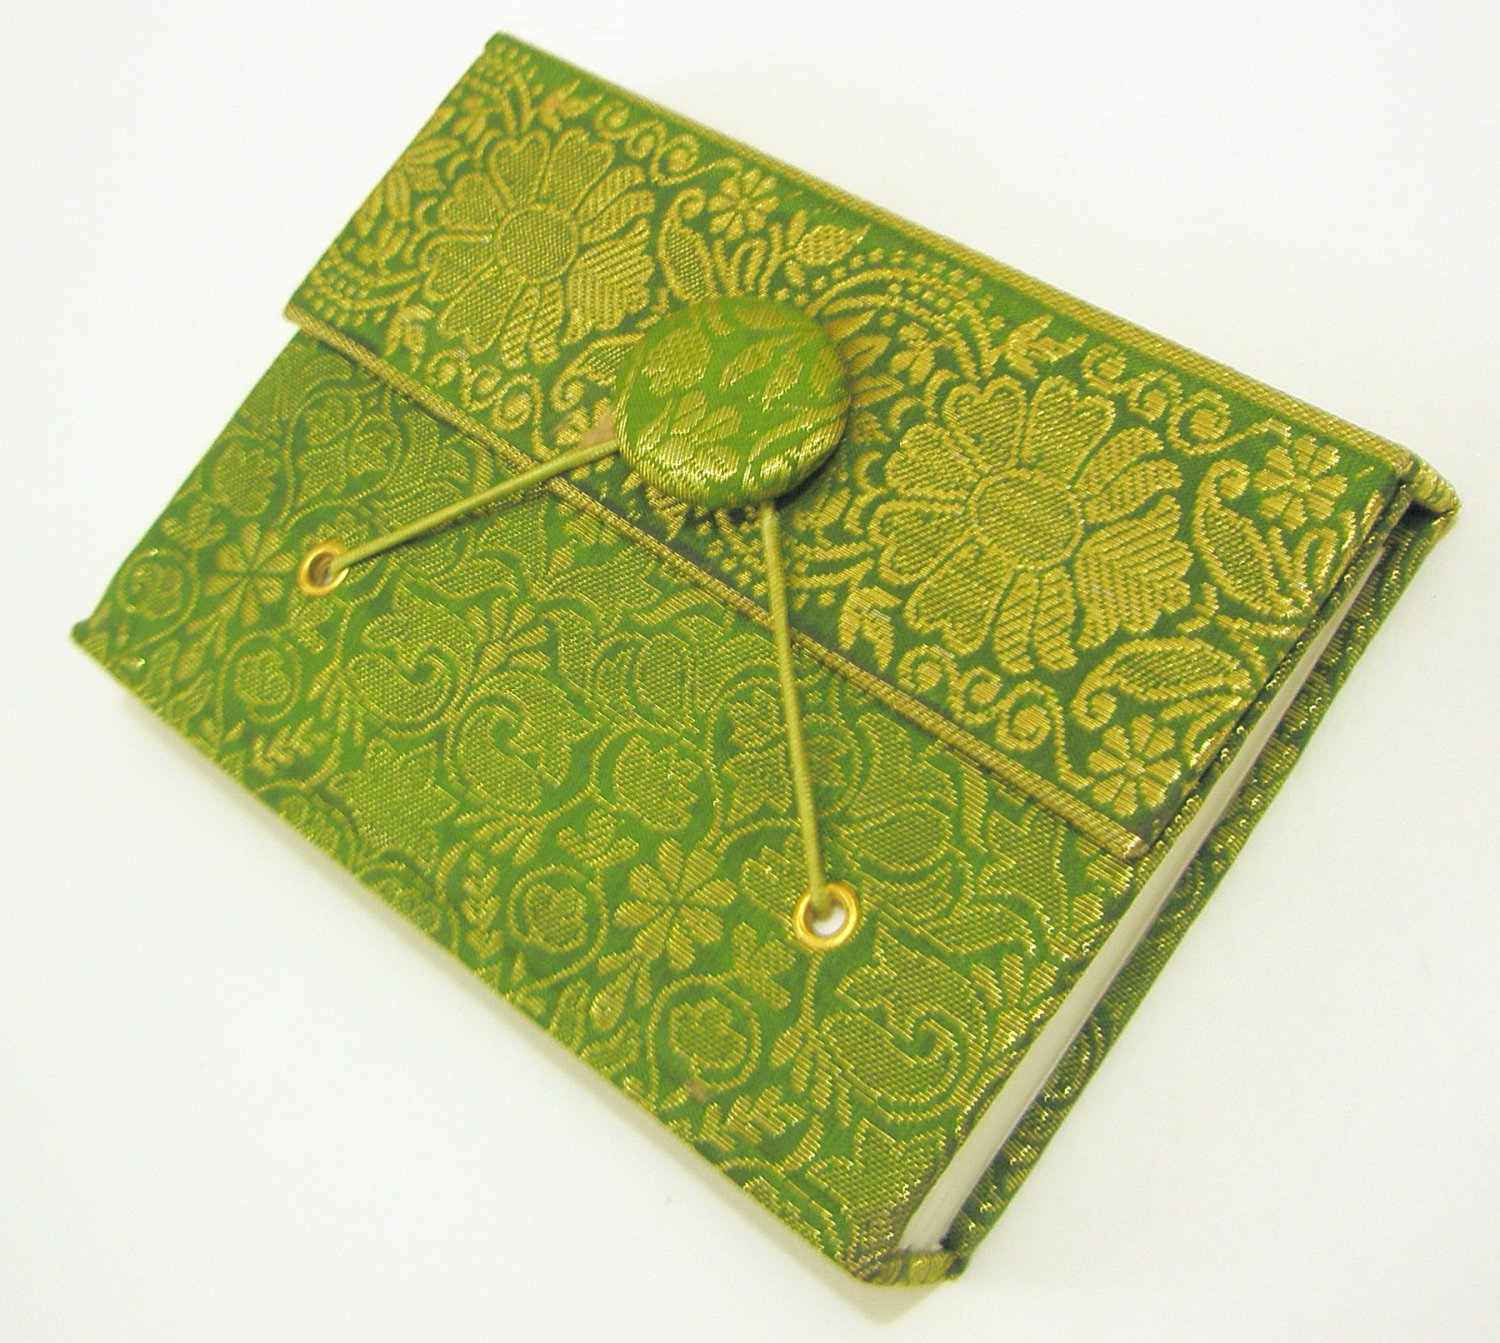 Handmade Book Cover Material ~ Handmade eco recycled paper unlined journal blank diary